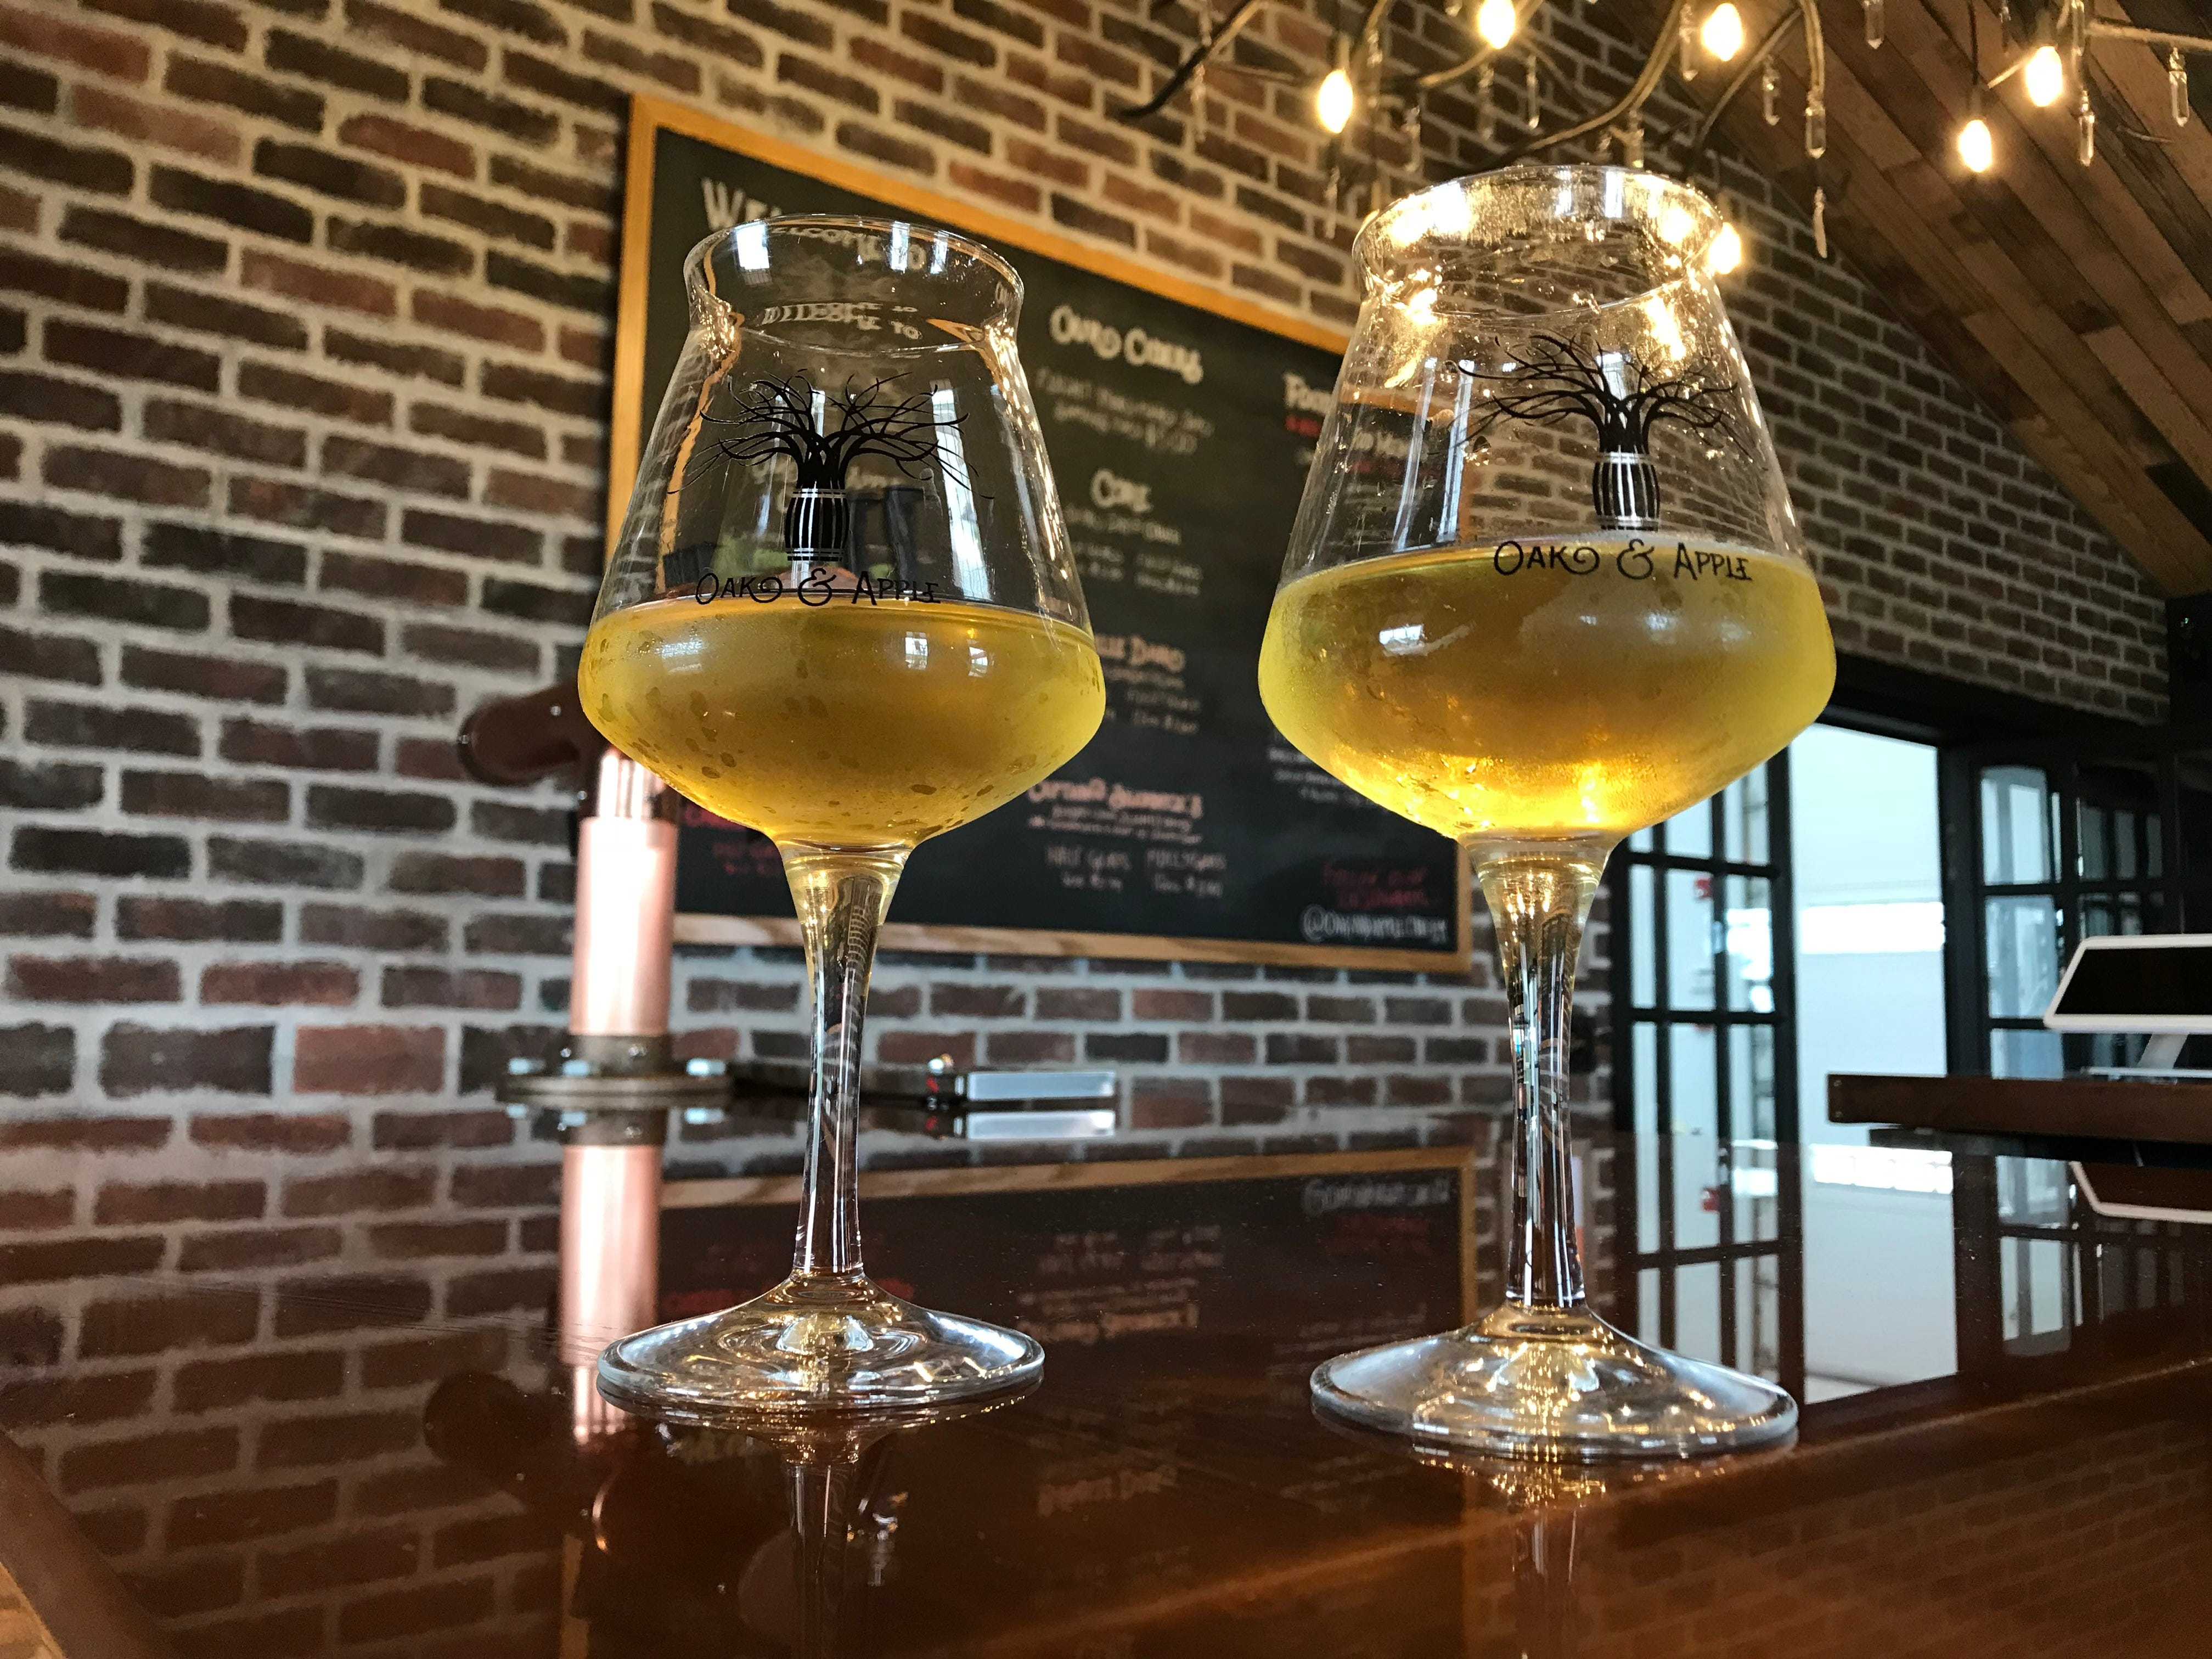 Two ciders at Oak & Apple Cidery in Penfield.